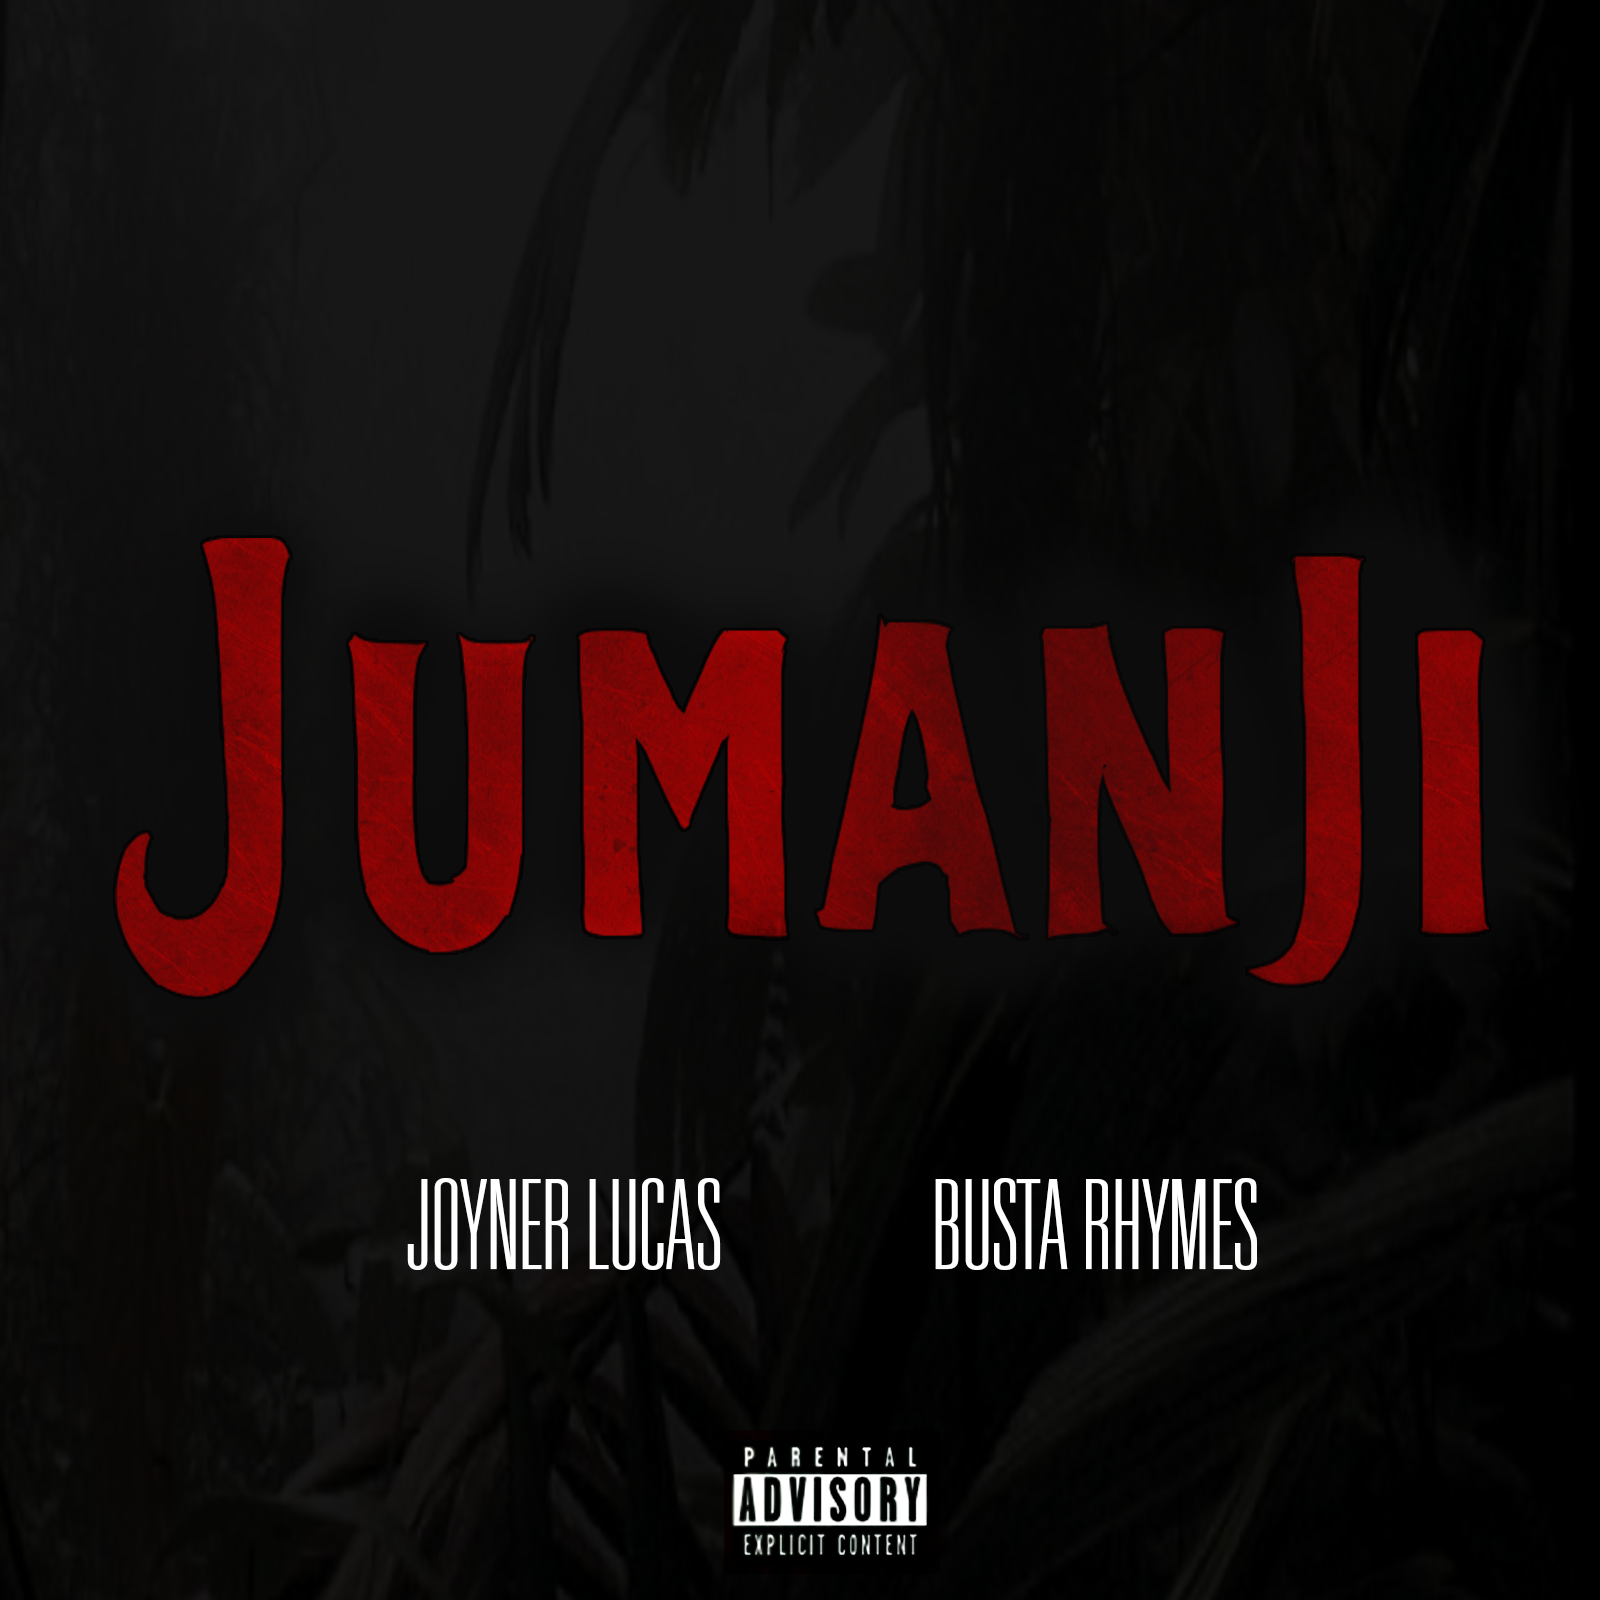 Jumanji Artwork